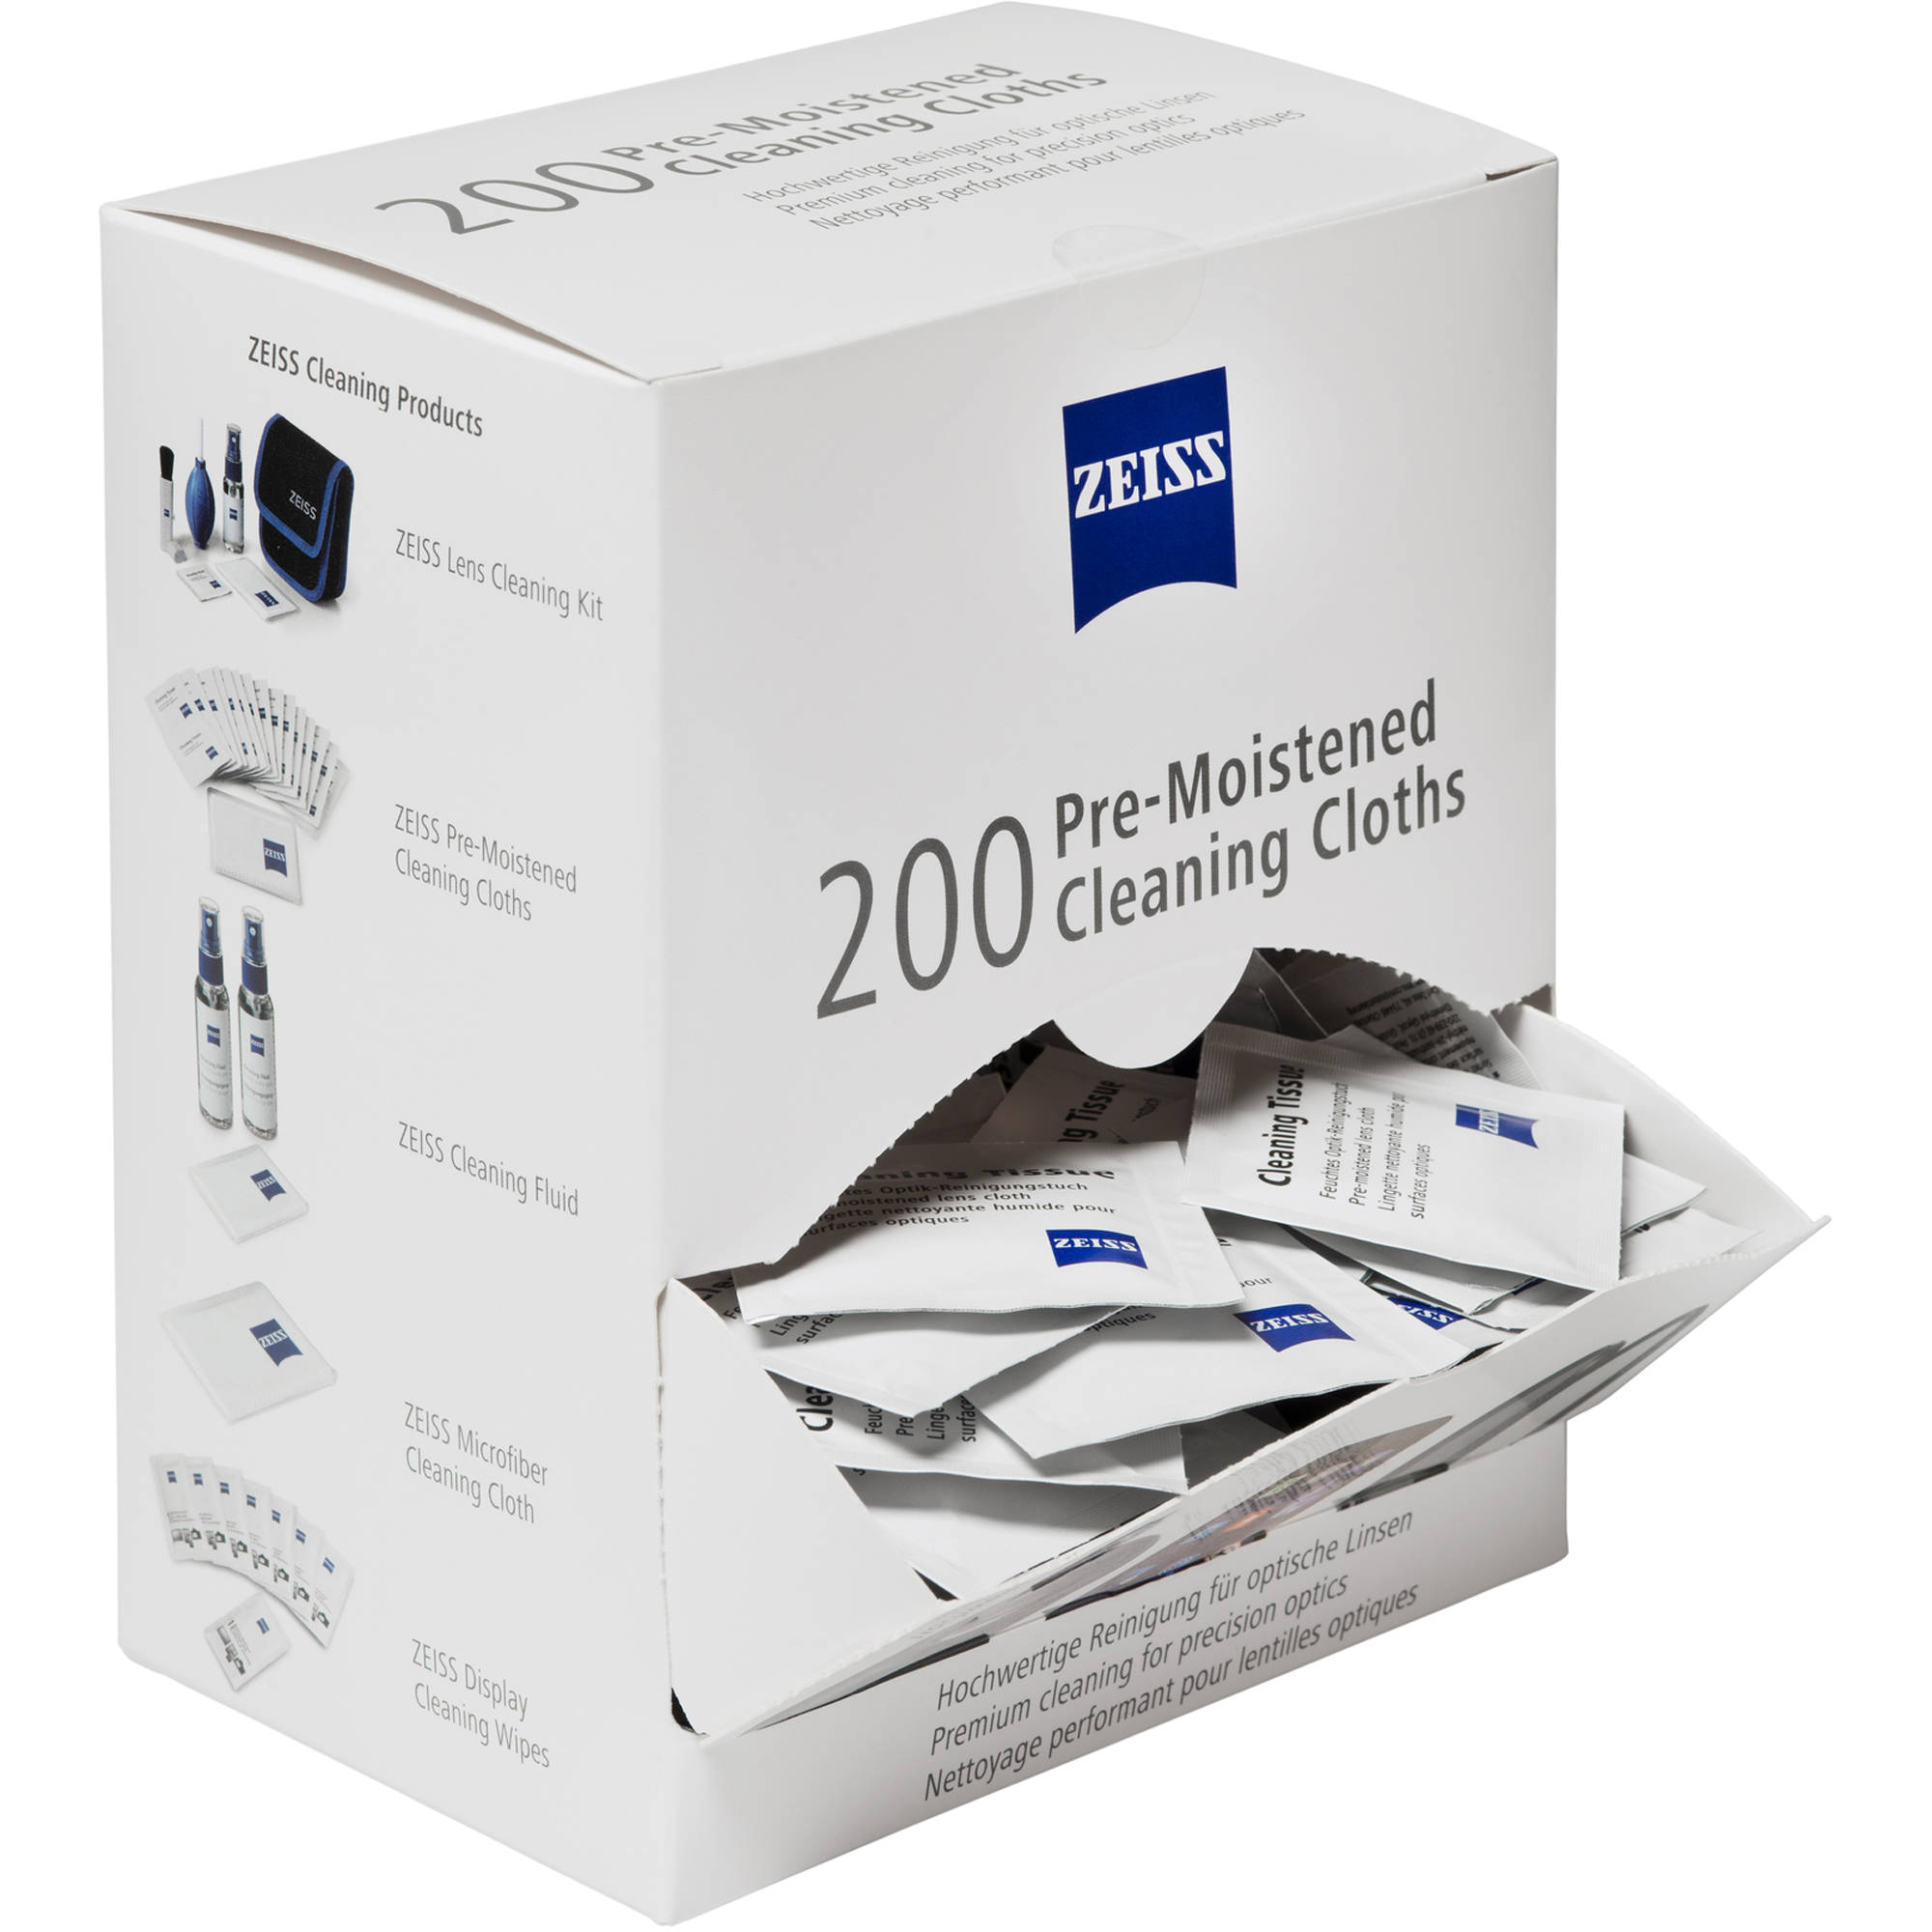 87b660ff80 ZEISS Pre-Moistened Cleaning Cloths (Box of 200) 2203-468 B H